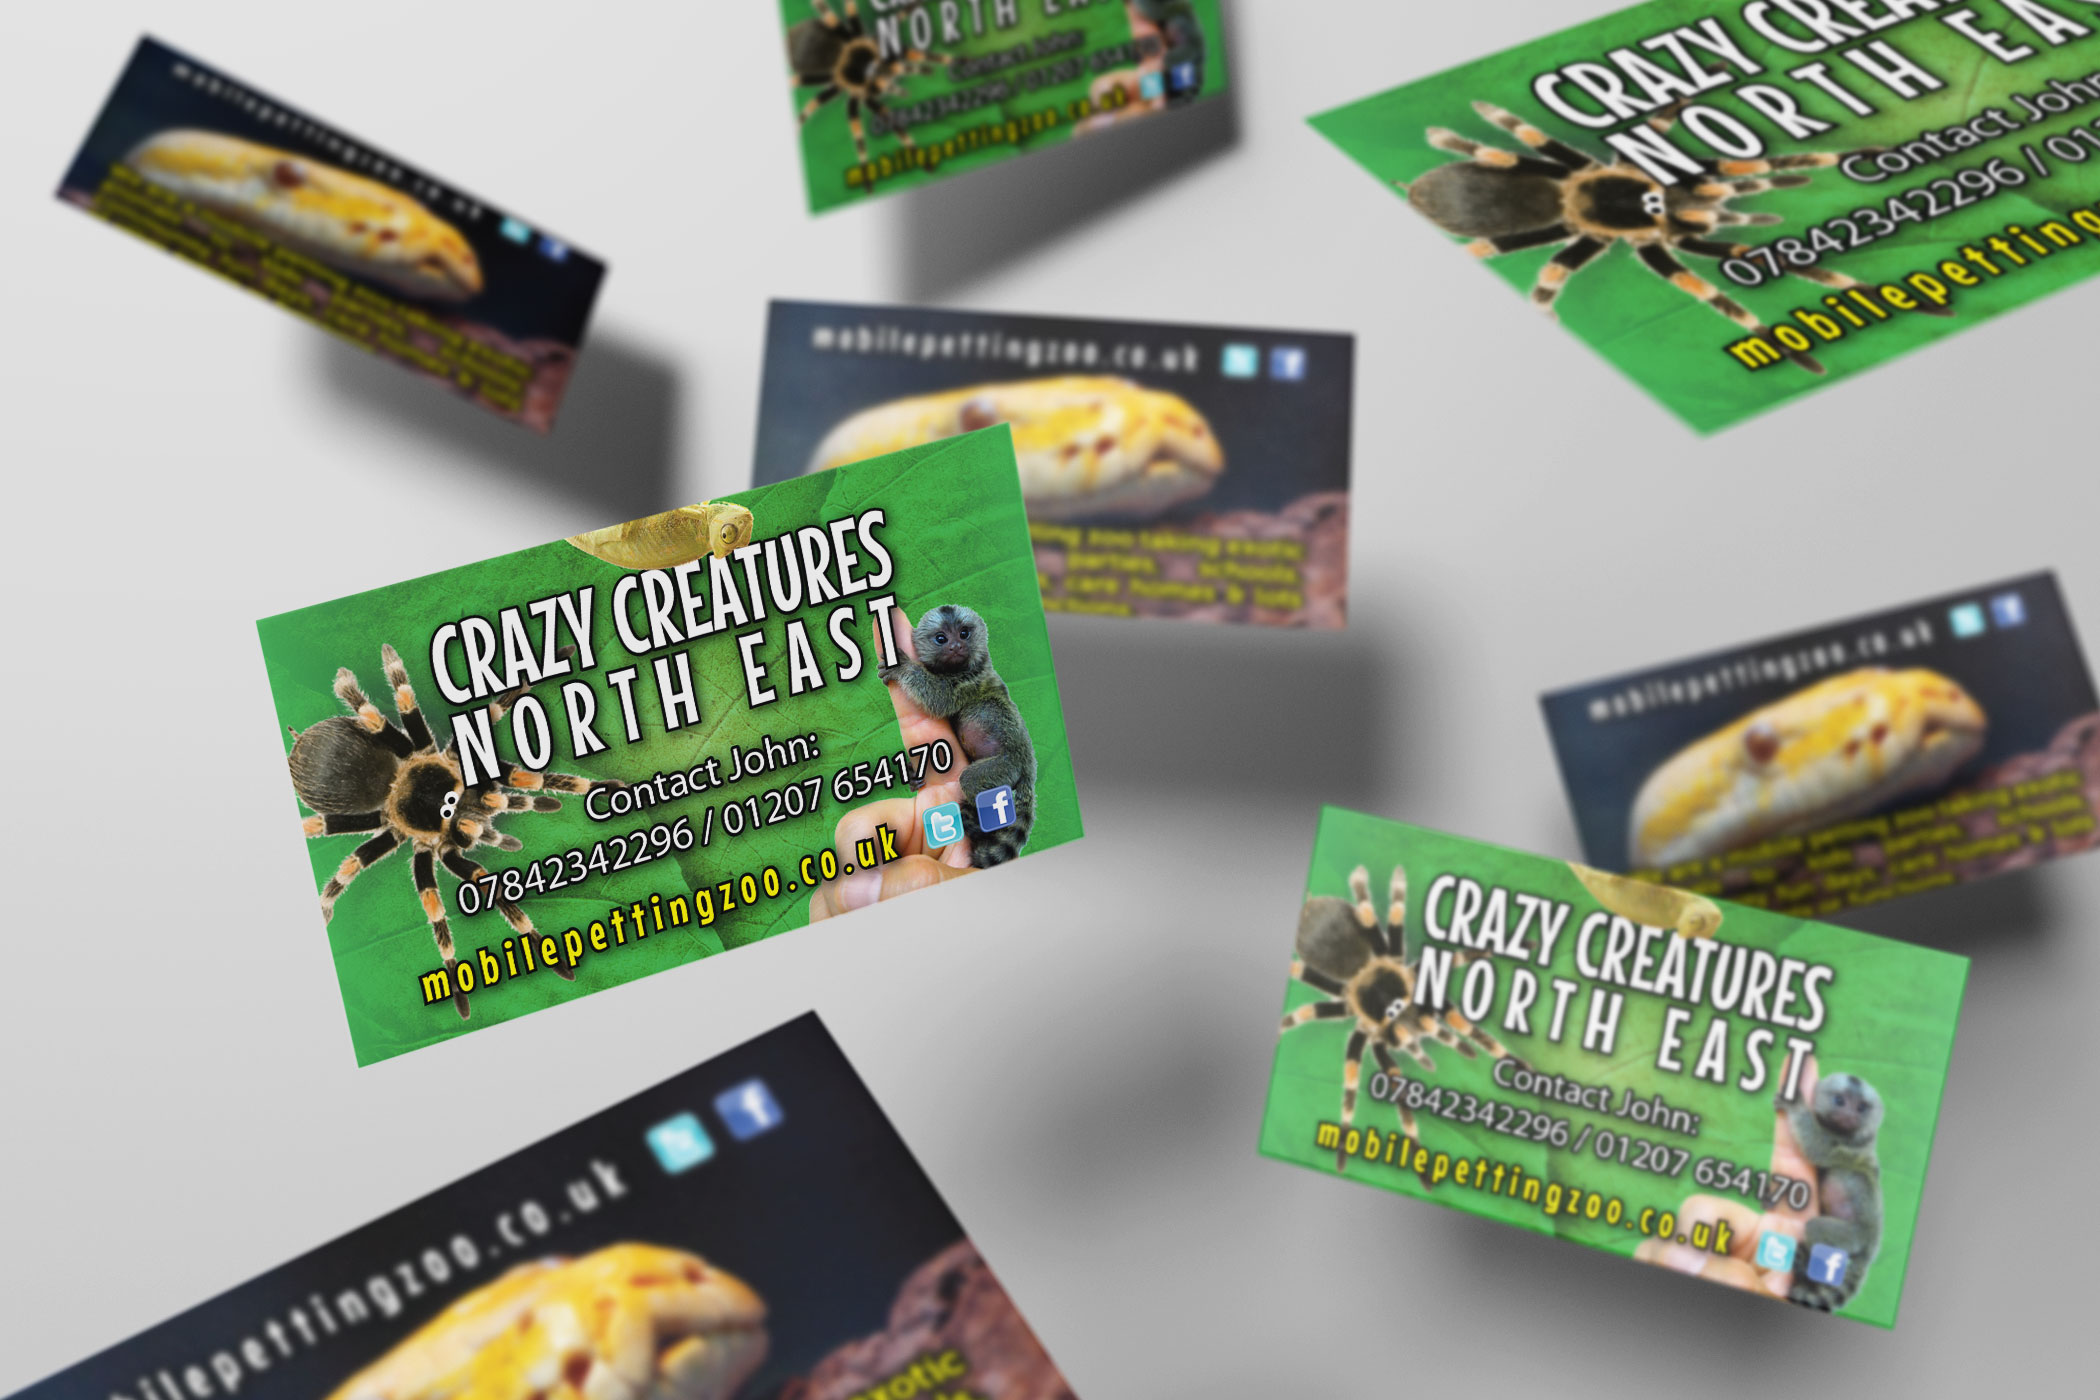 Crazy Creatures North East - Business Card Design and Print ...